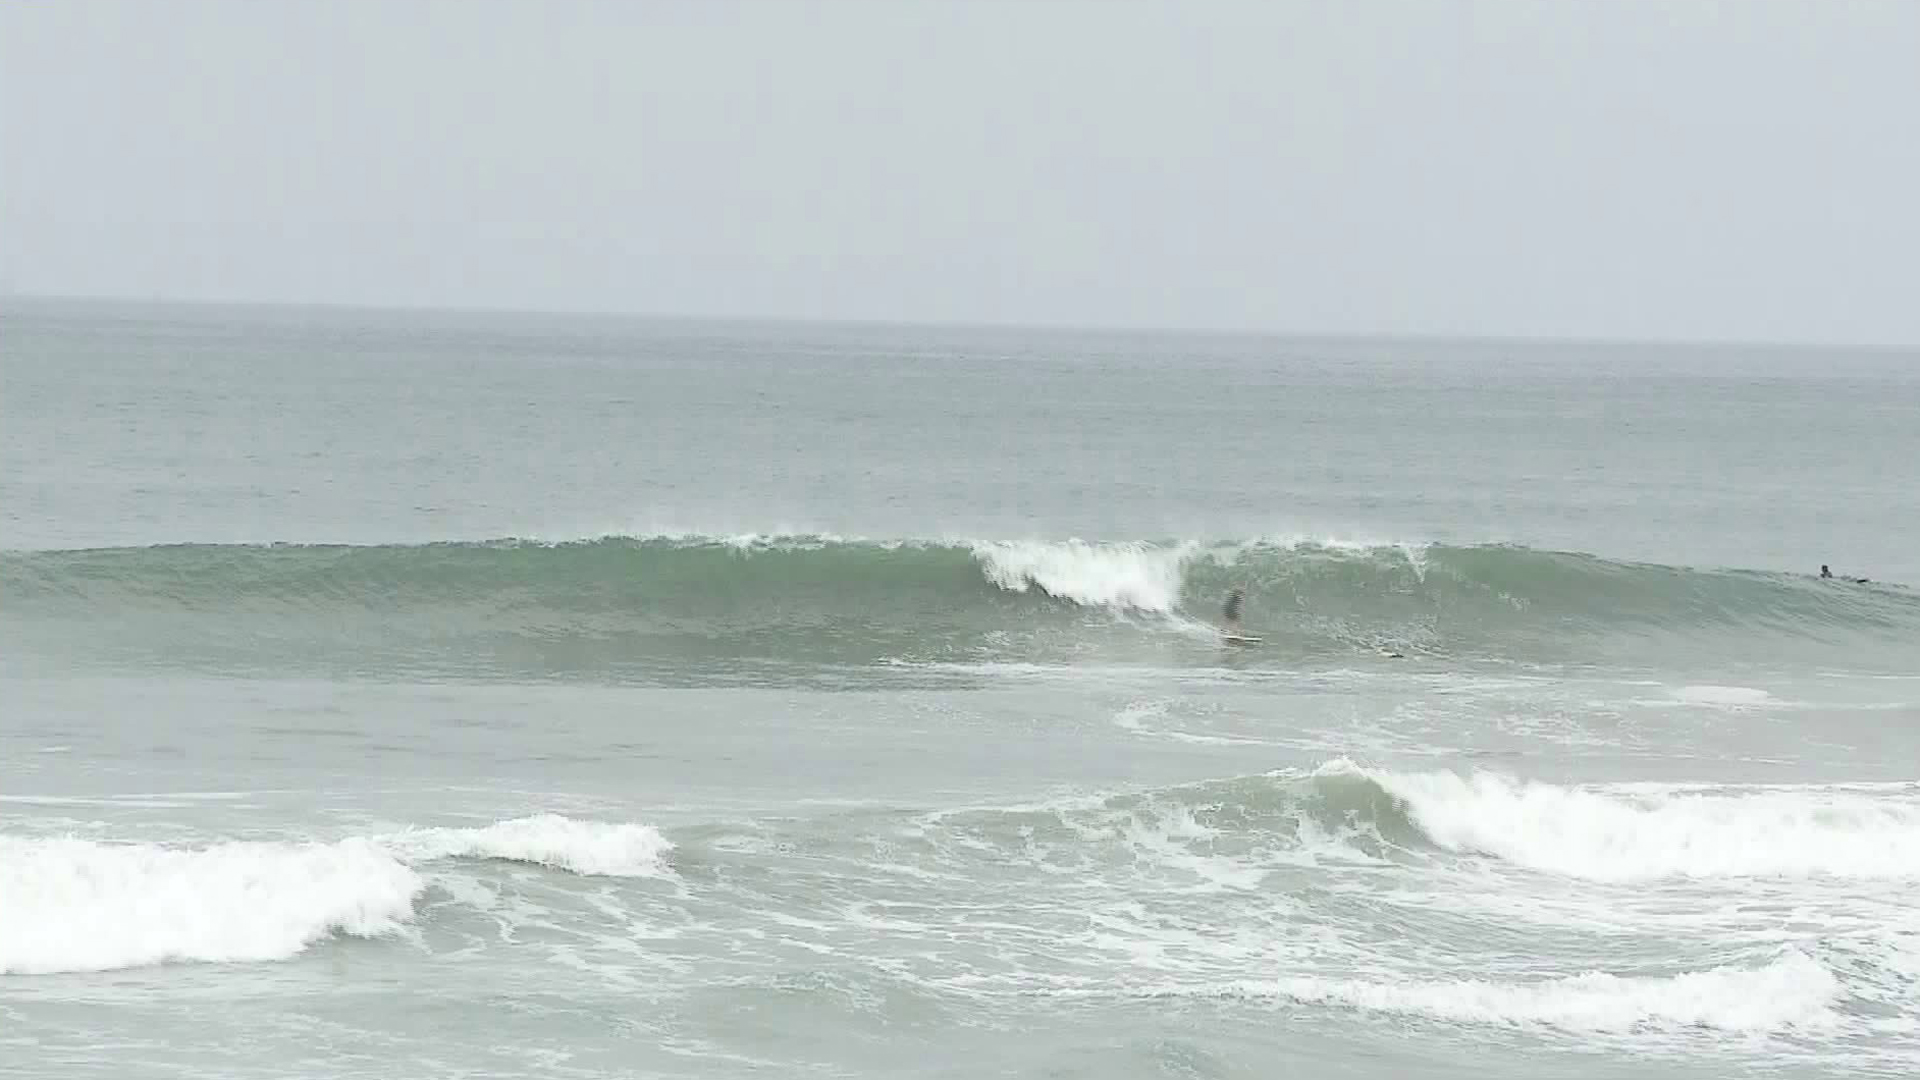 Surfers check out big waves in Huntington Beach on June 11, 2018. (Credit: KTLA)